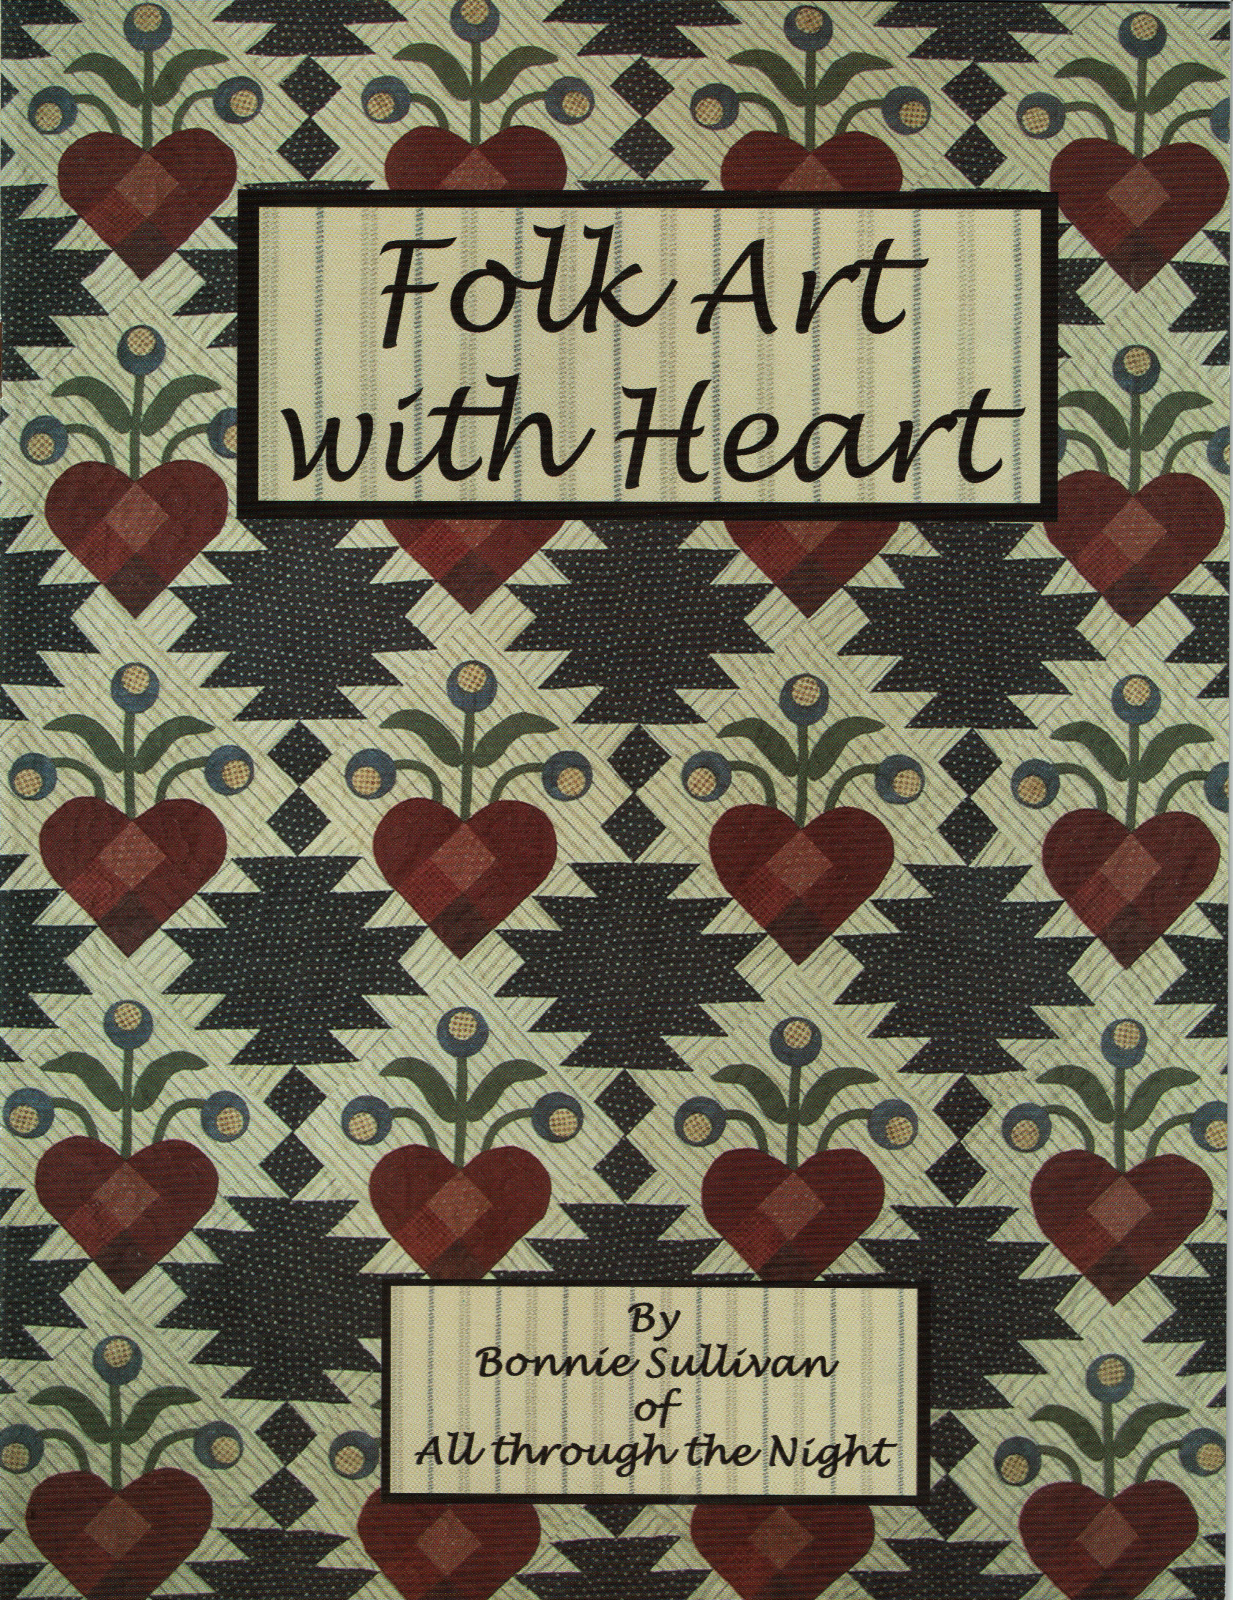 Folk Art with Heart by Bonnie Sullivan (book)